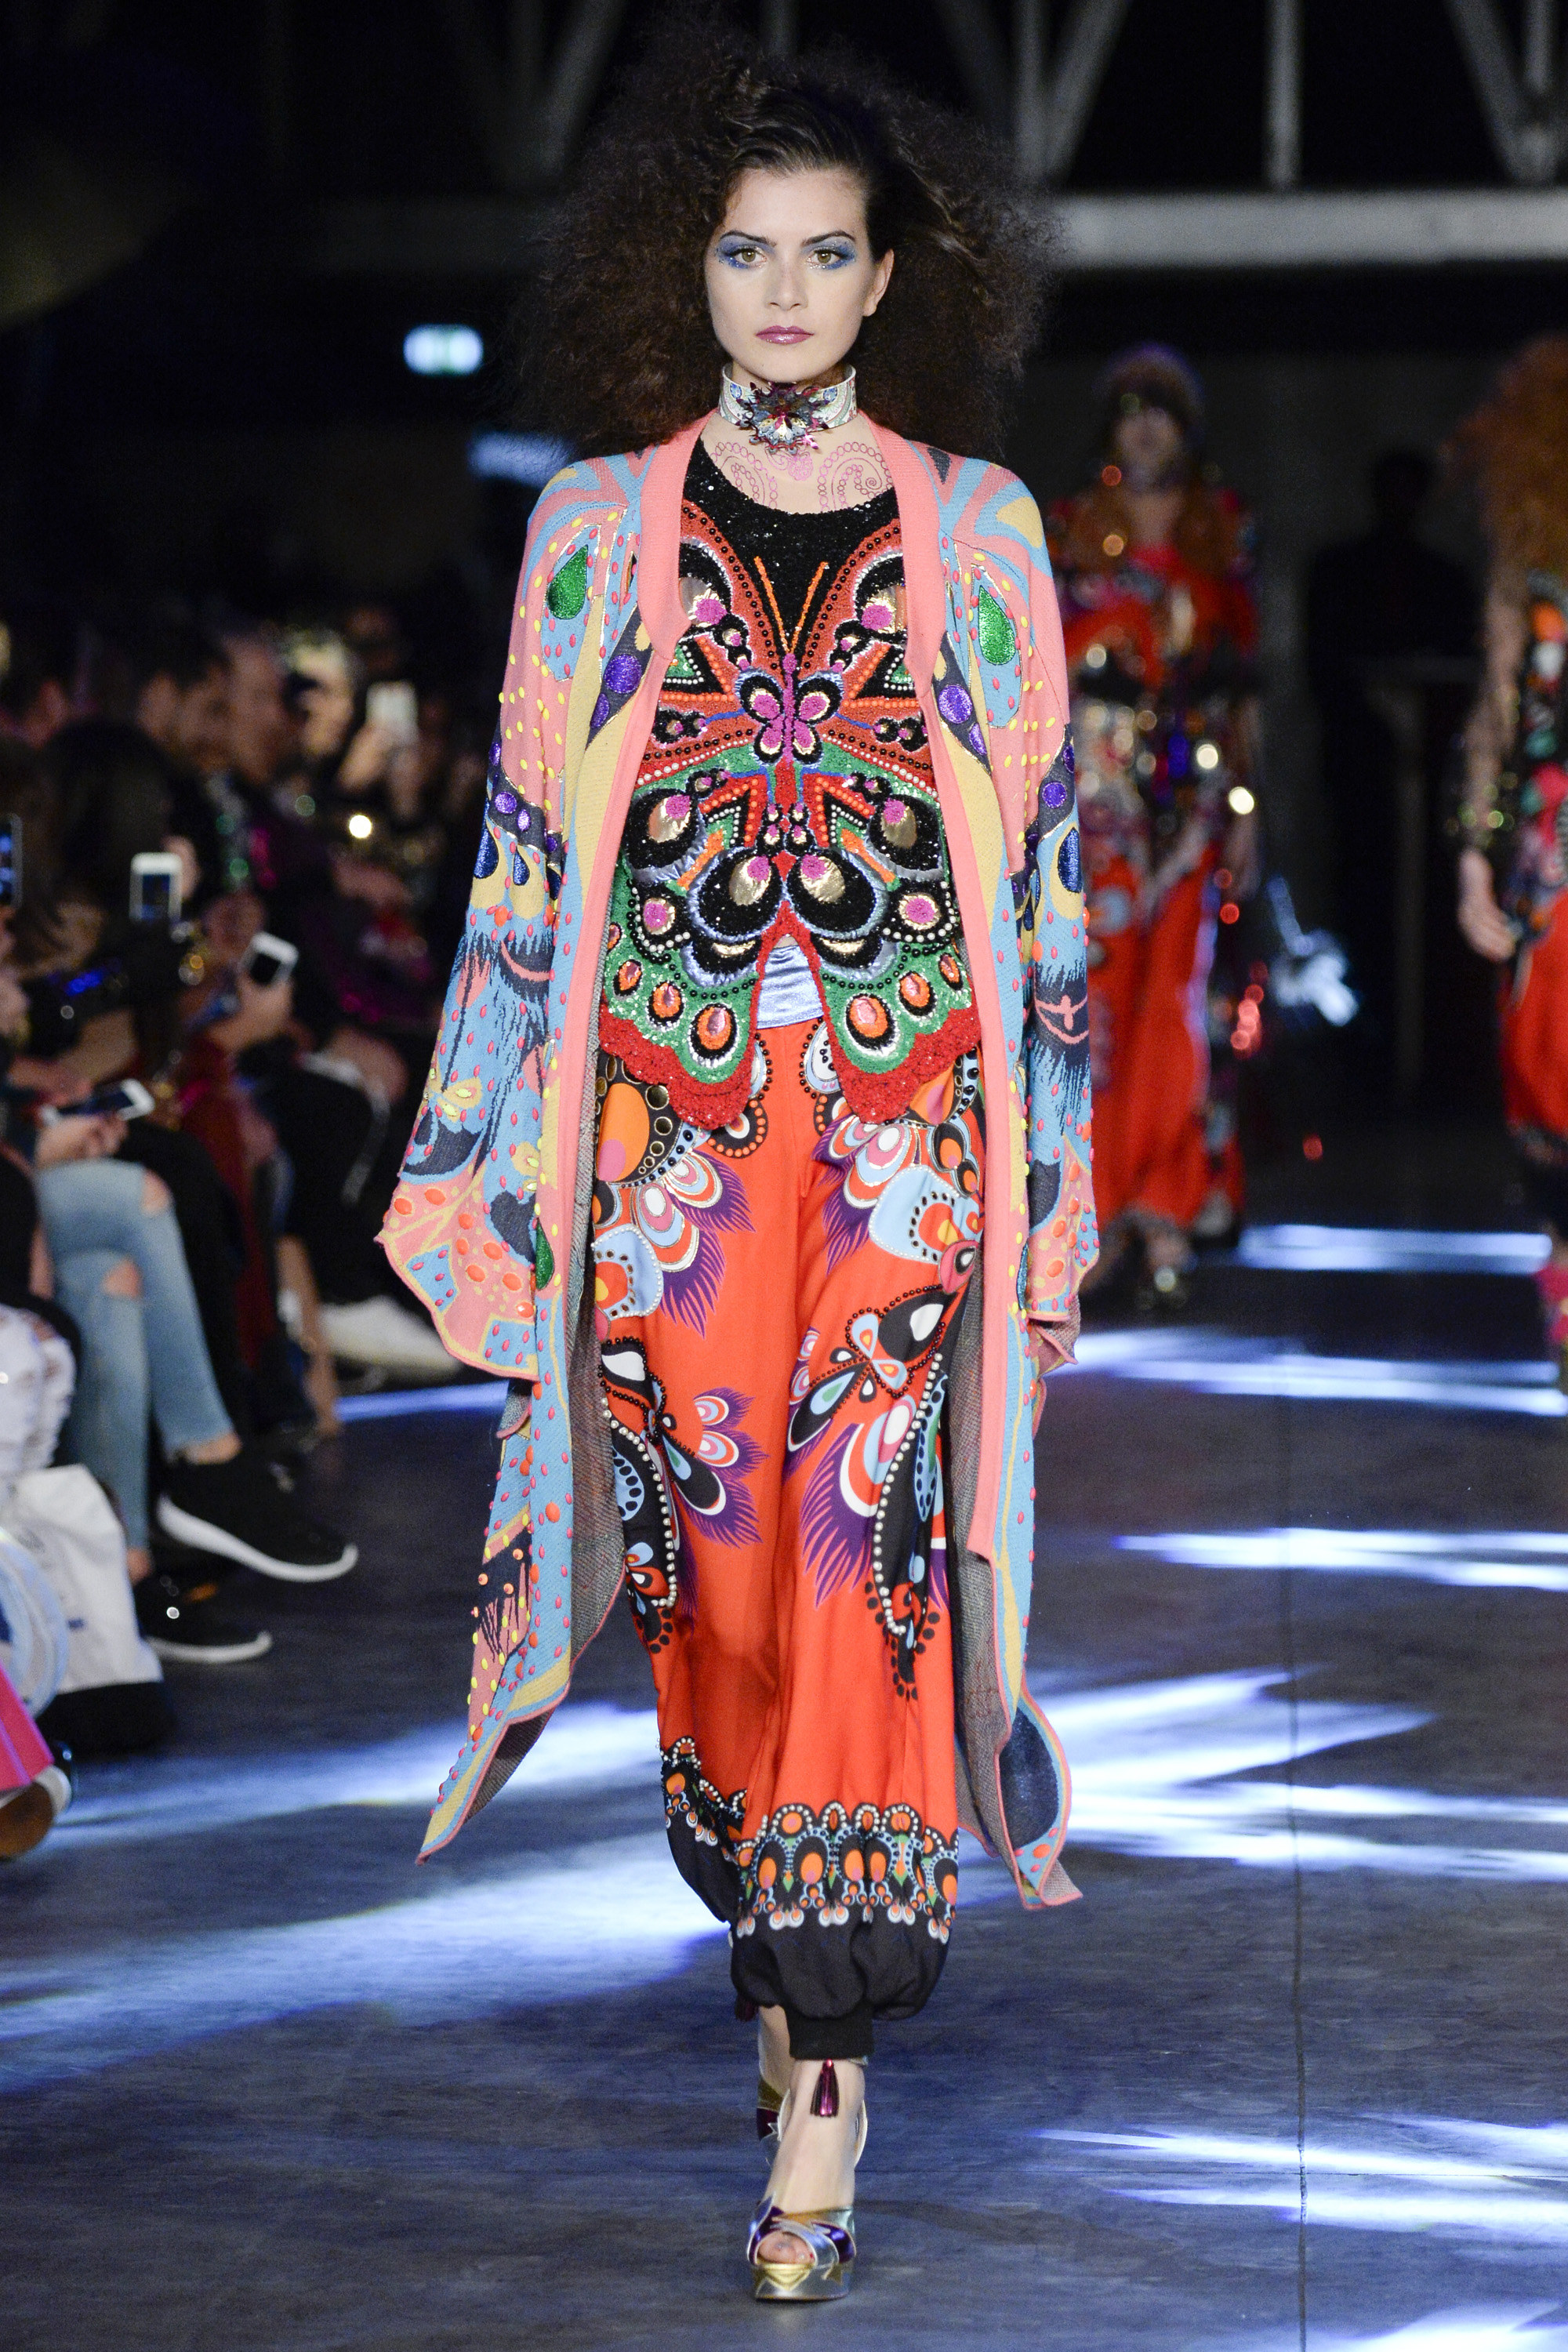 Paris Fashion Week Spring 2016: Manish Arora – Anibundel